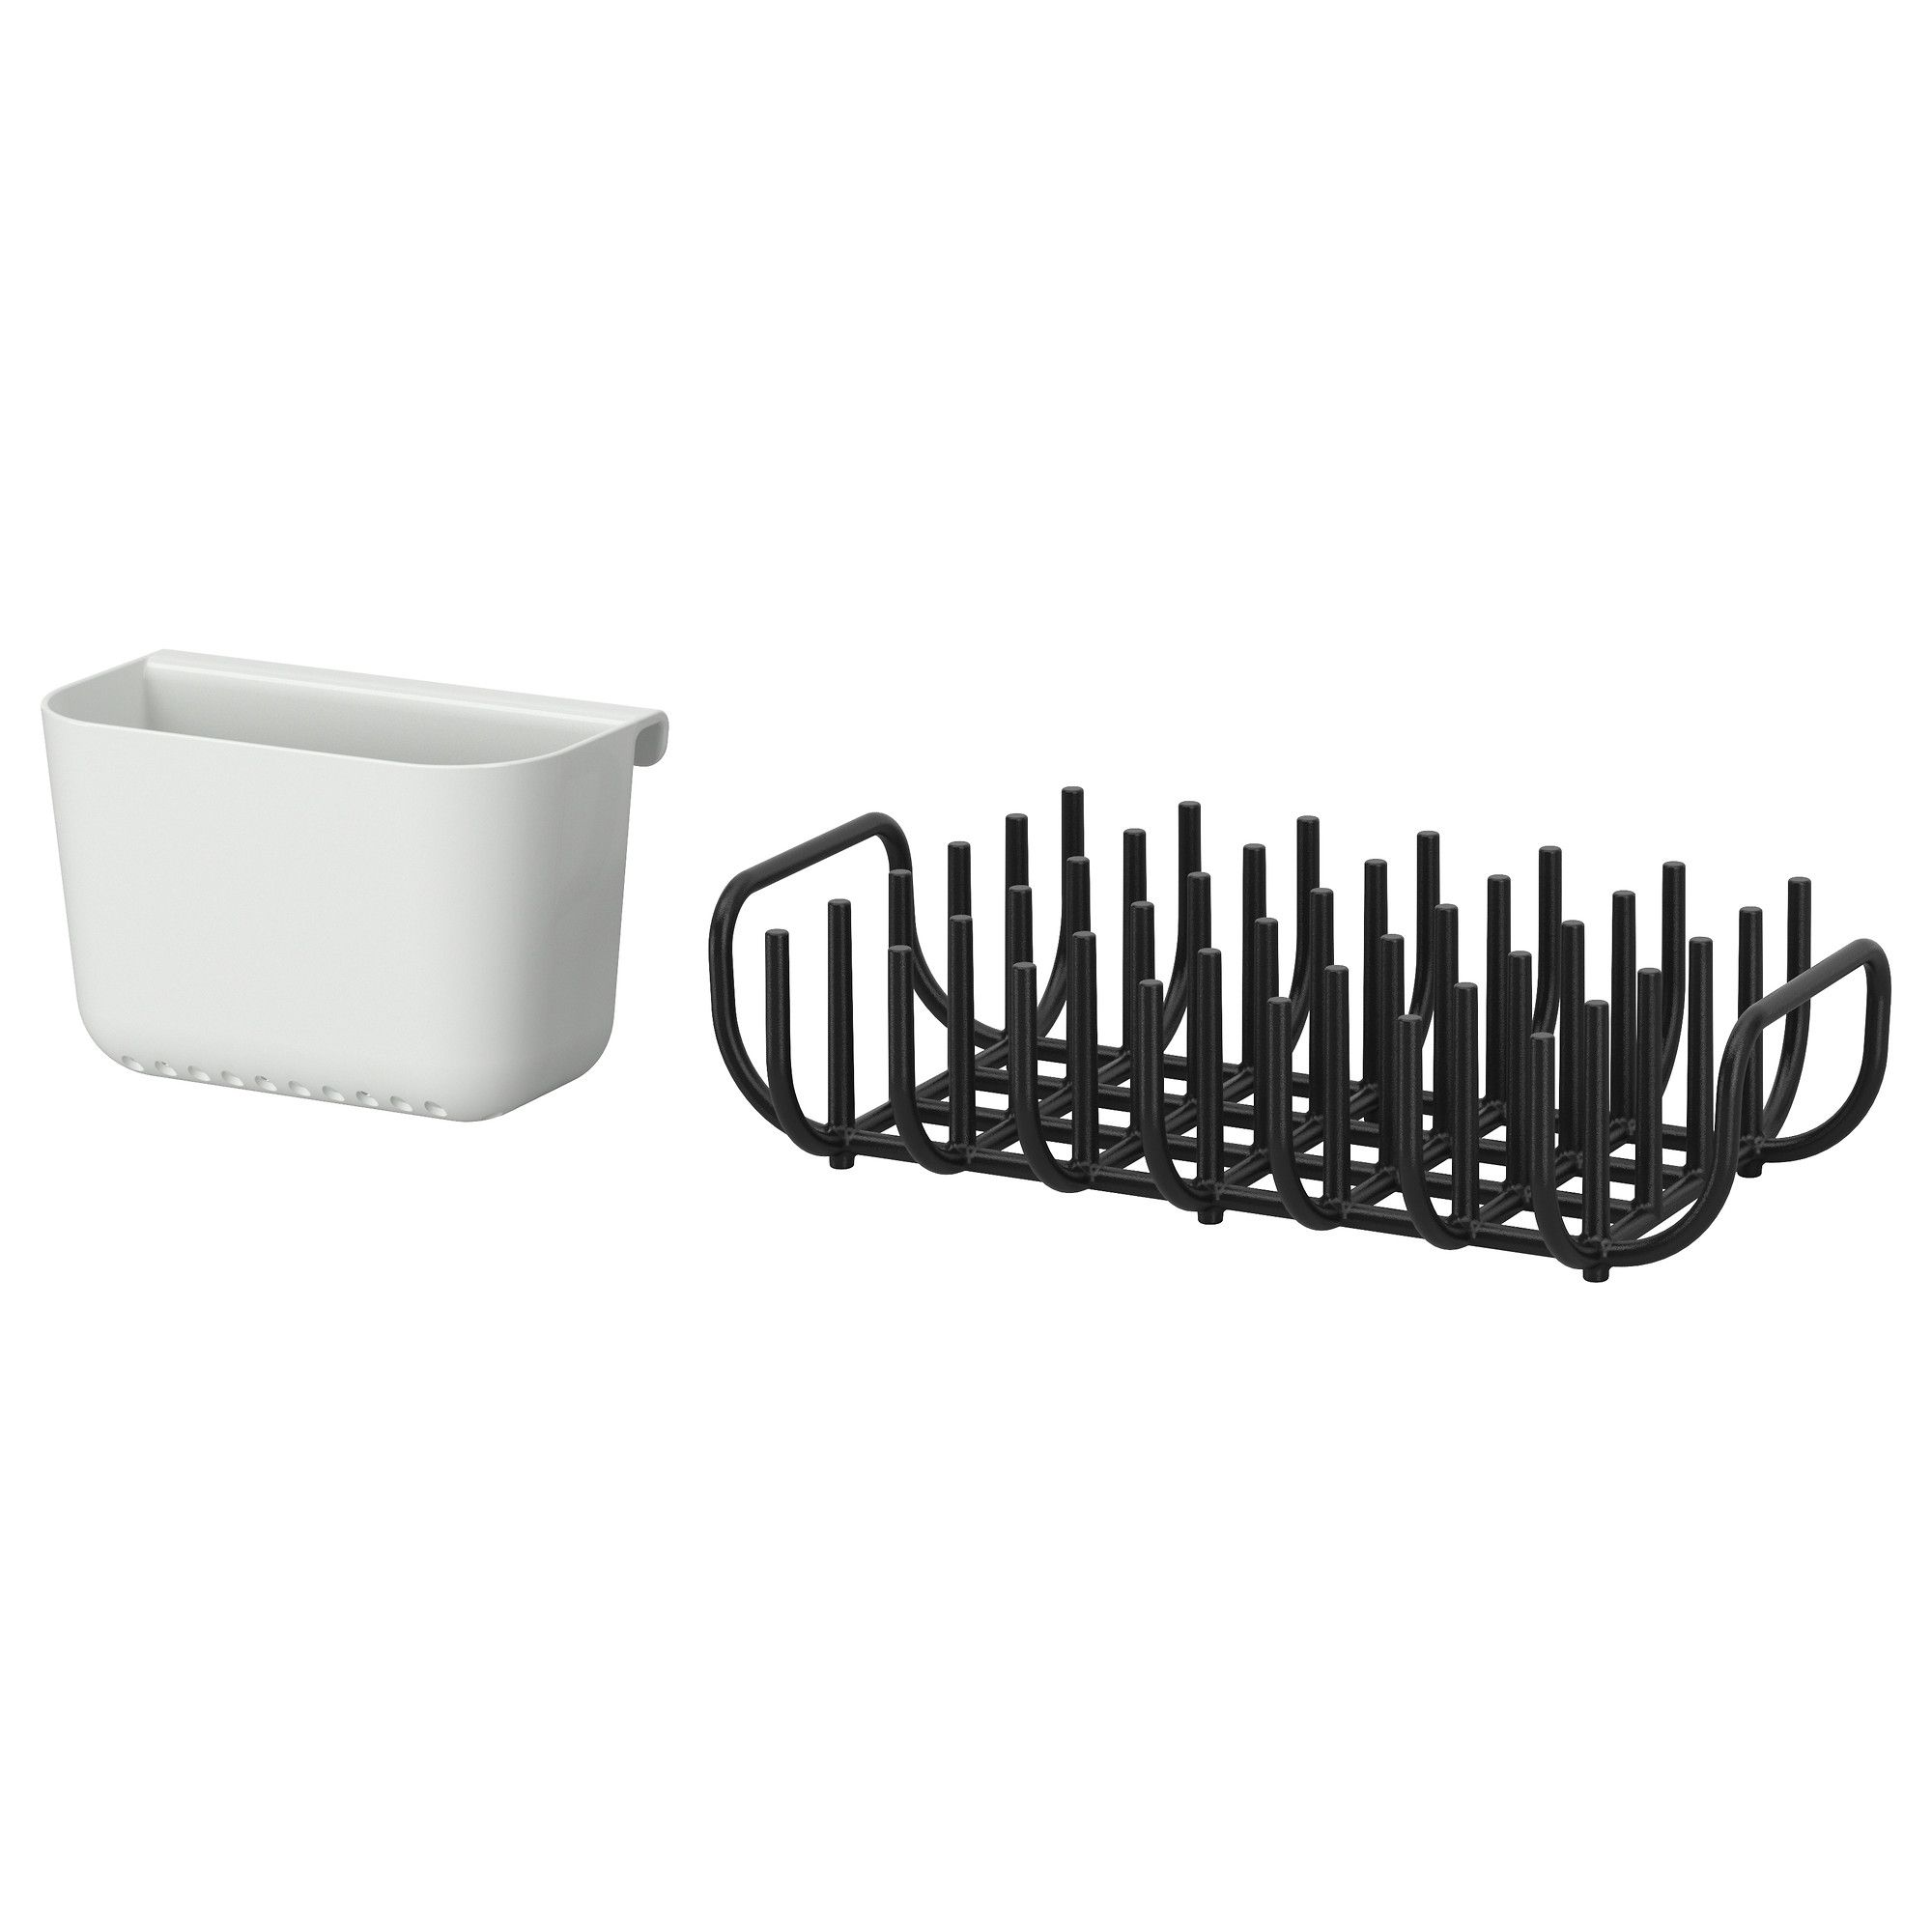 boholmen dish drainer and flatware basket - ikea | things i'd like